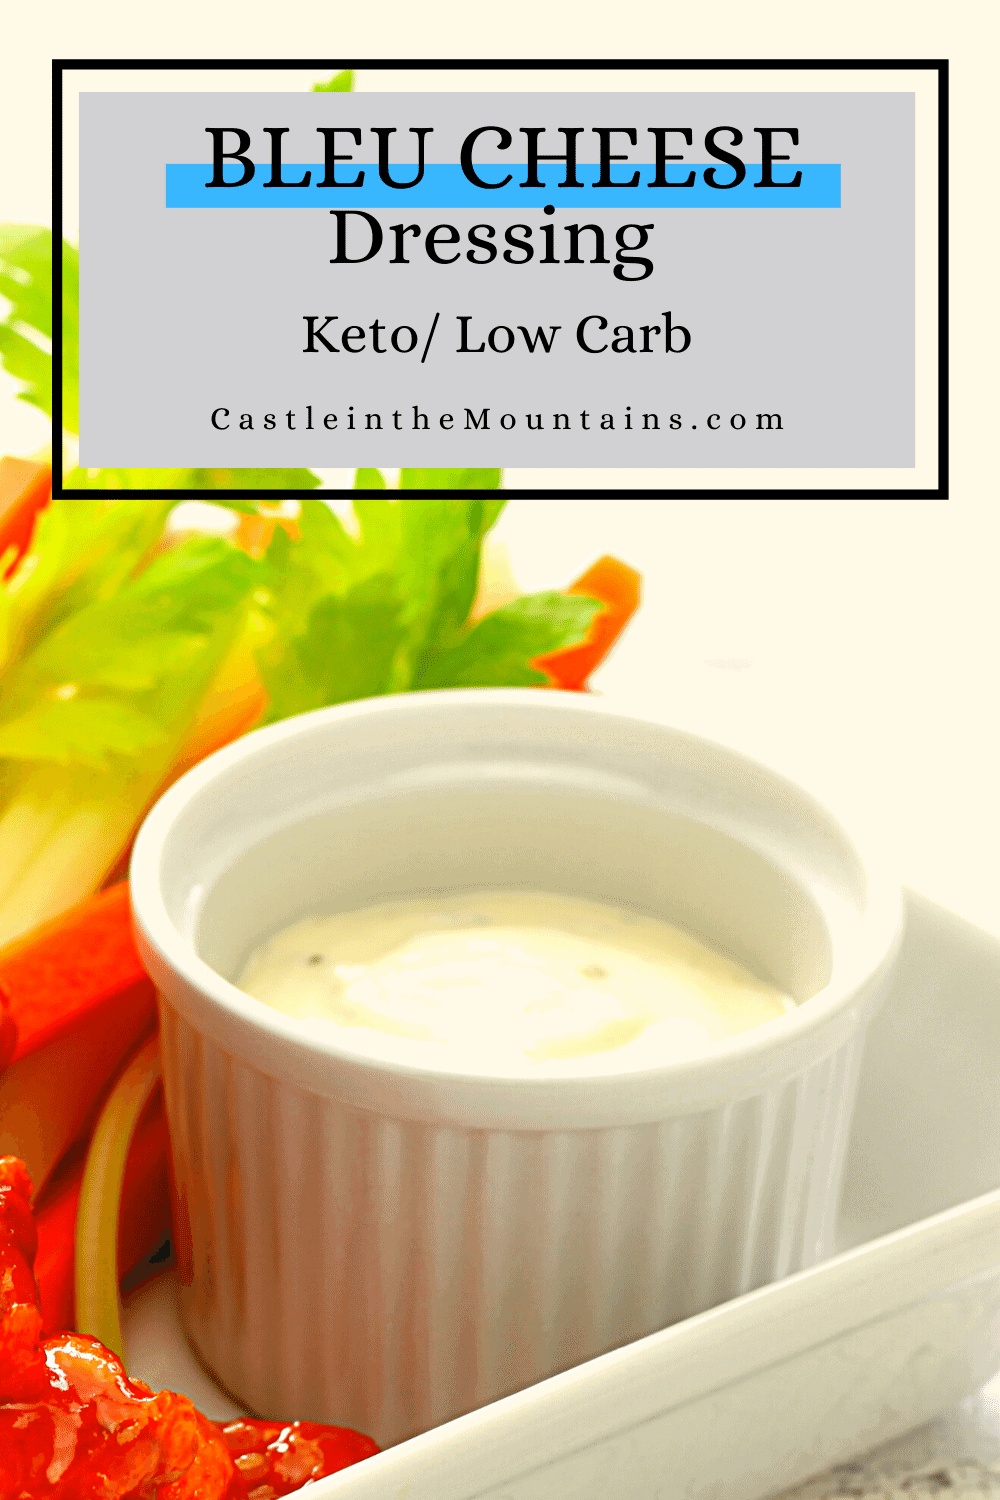 Low Carb Bleu Cheese Dressing Recipe